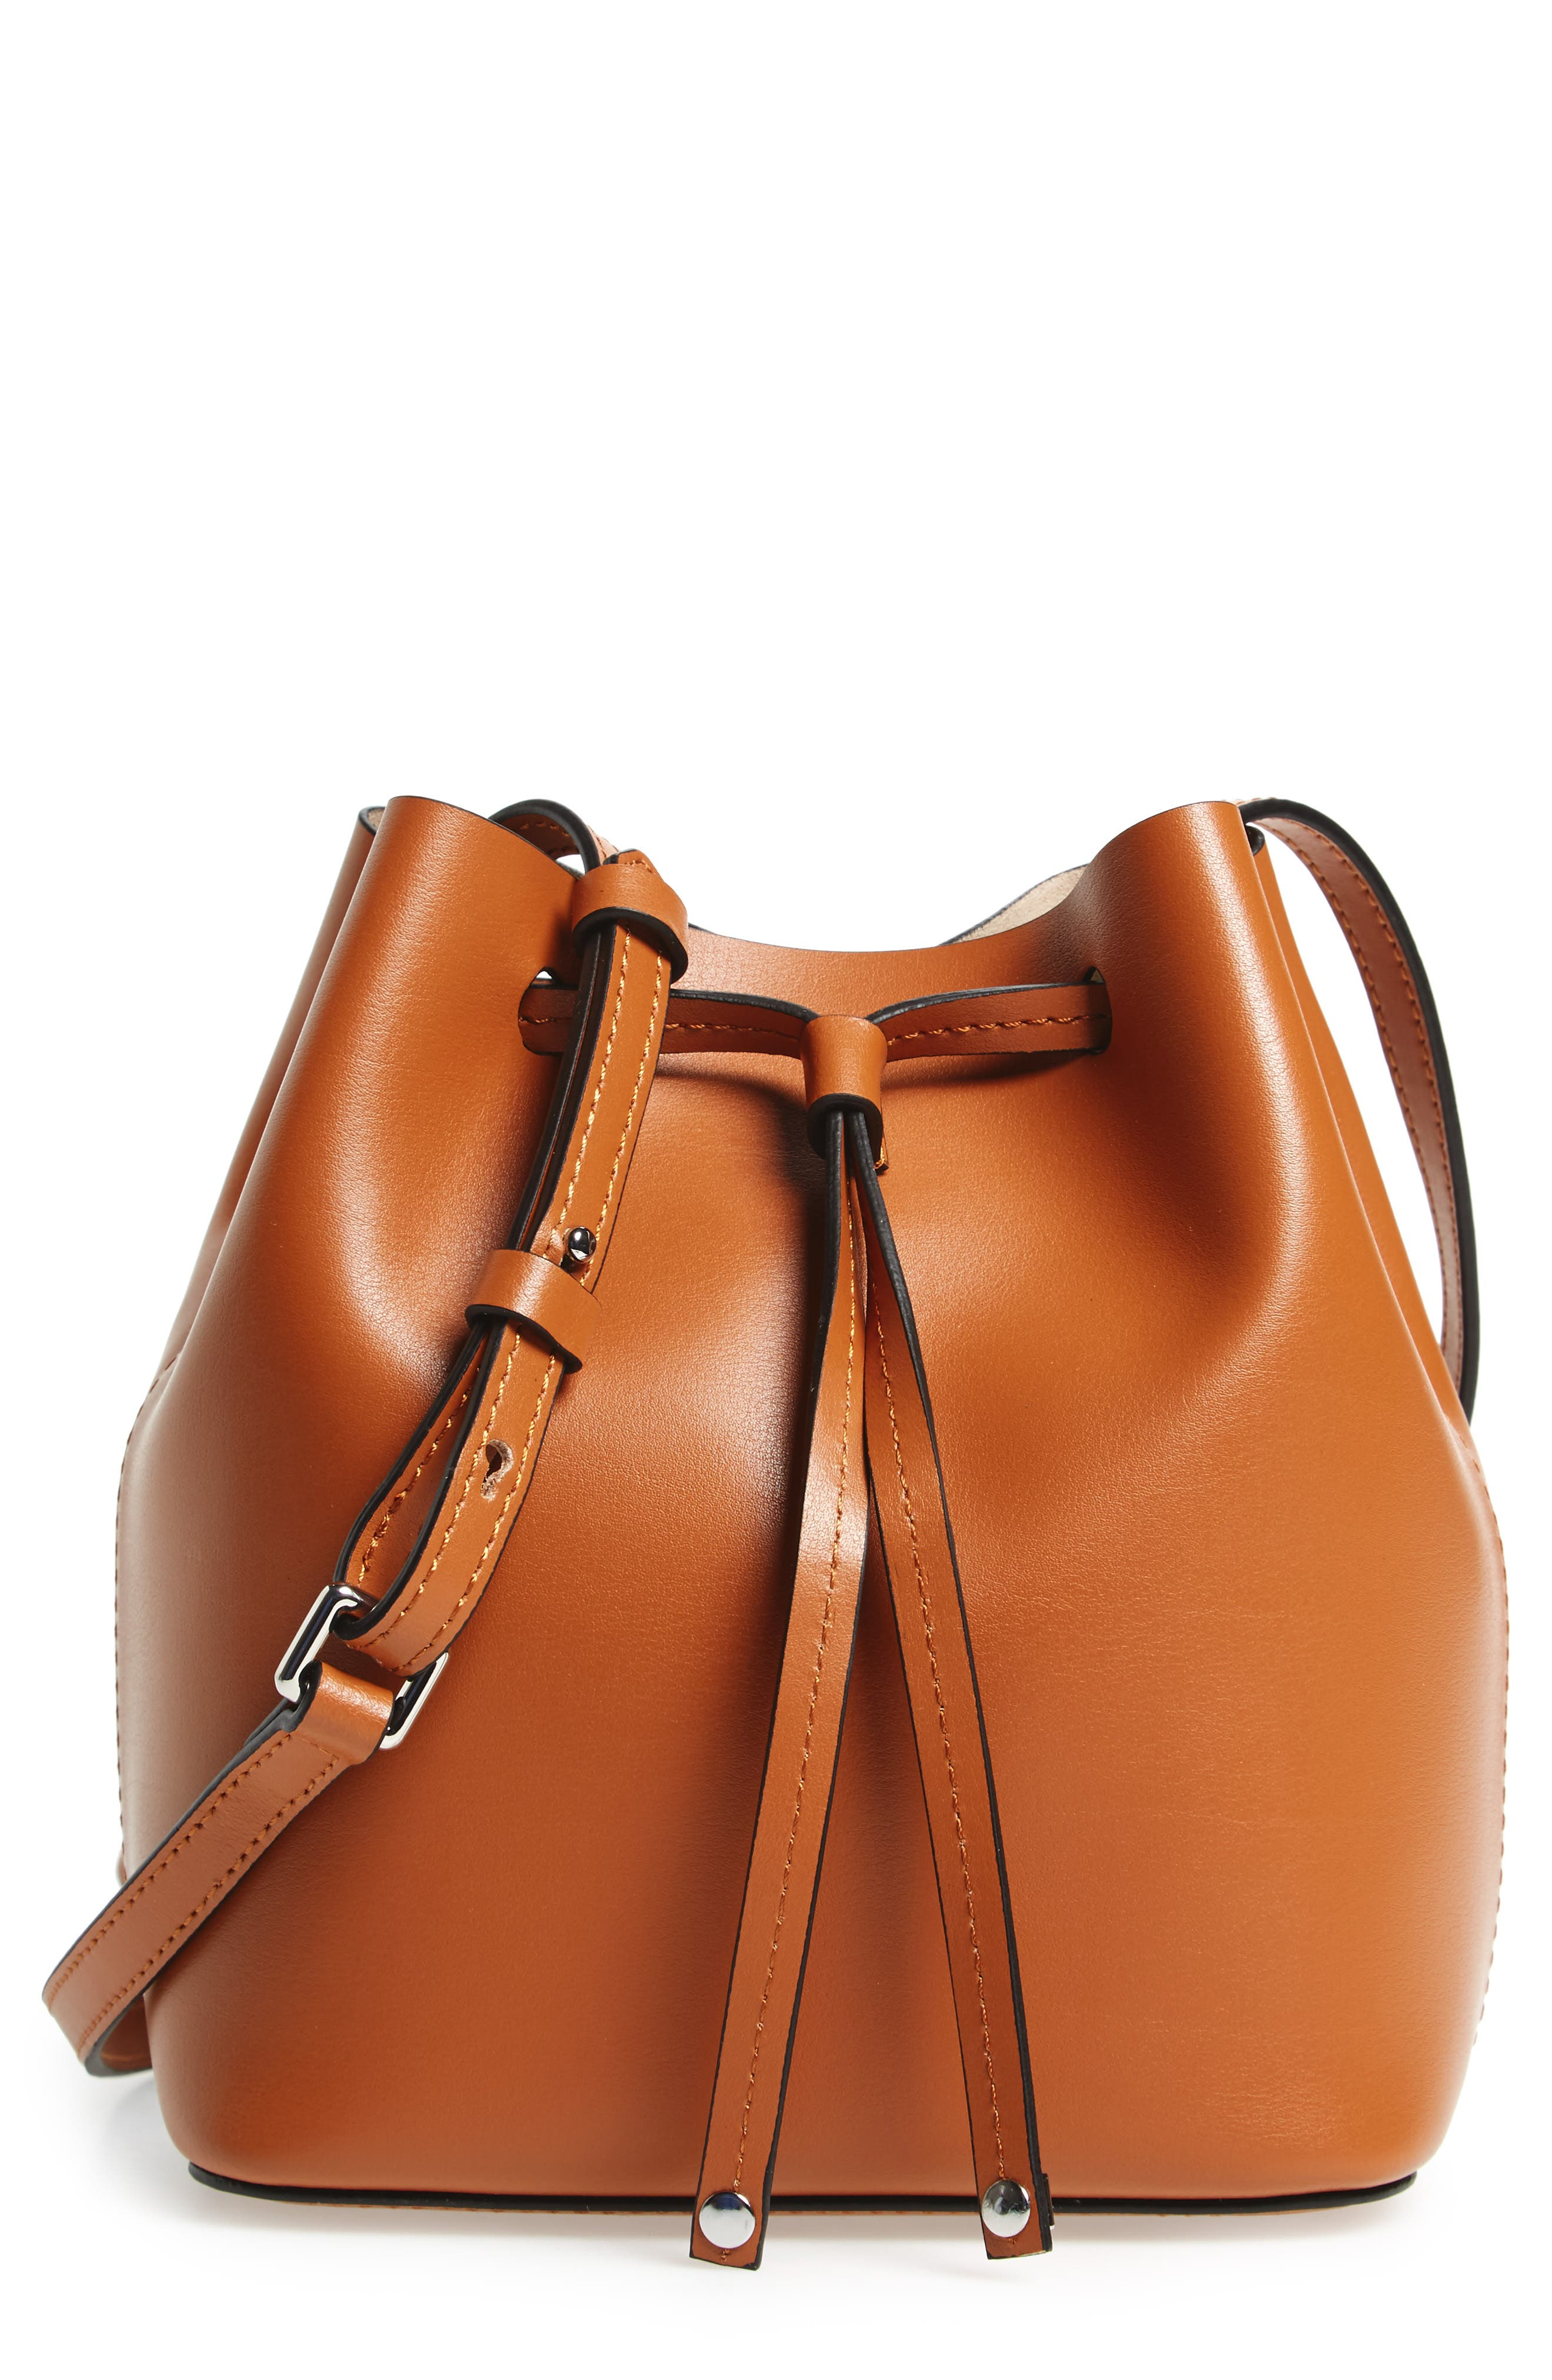 Alternate Image 1 Selected - Lodis Small Silicon Valley Blake RFID Leather Bucket Bag